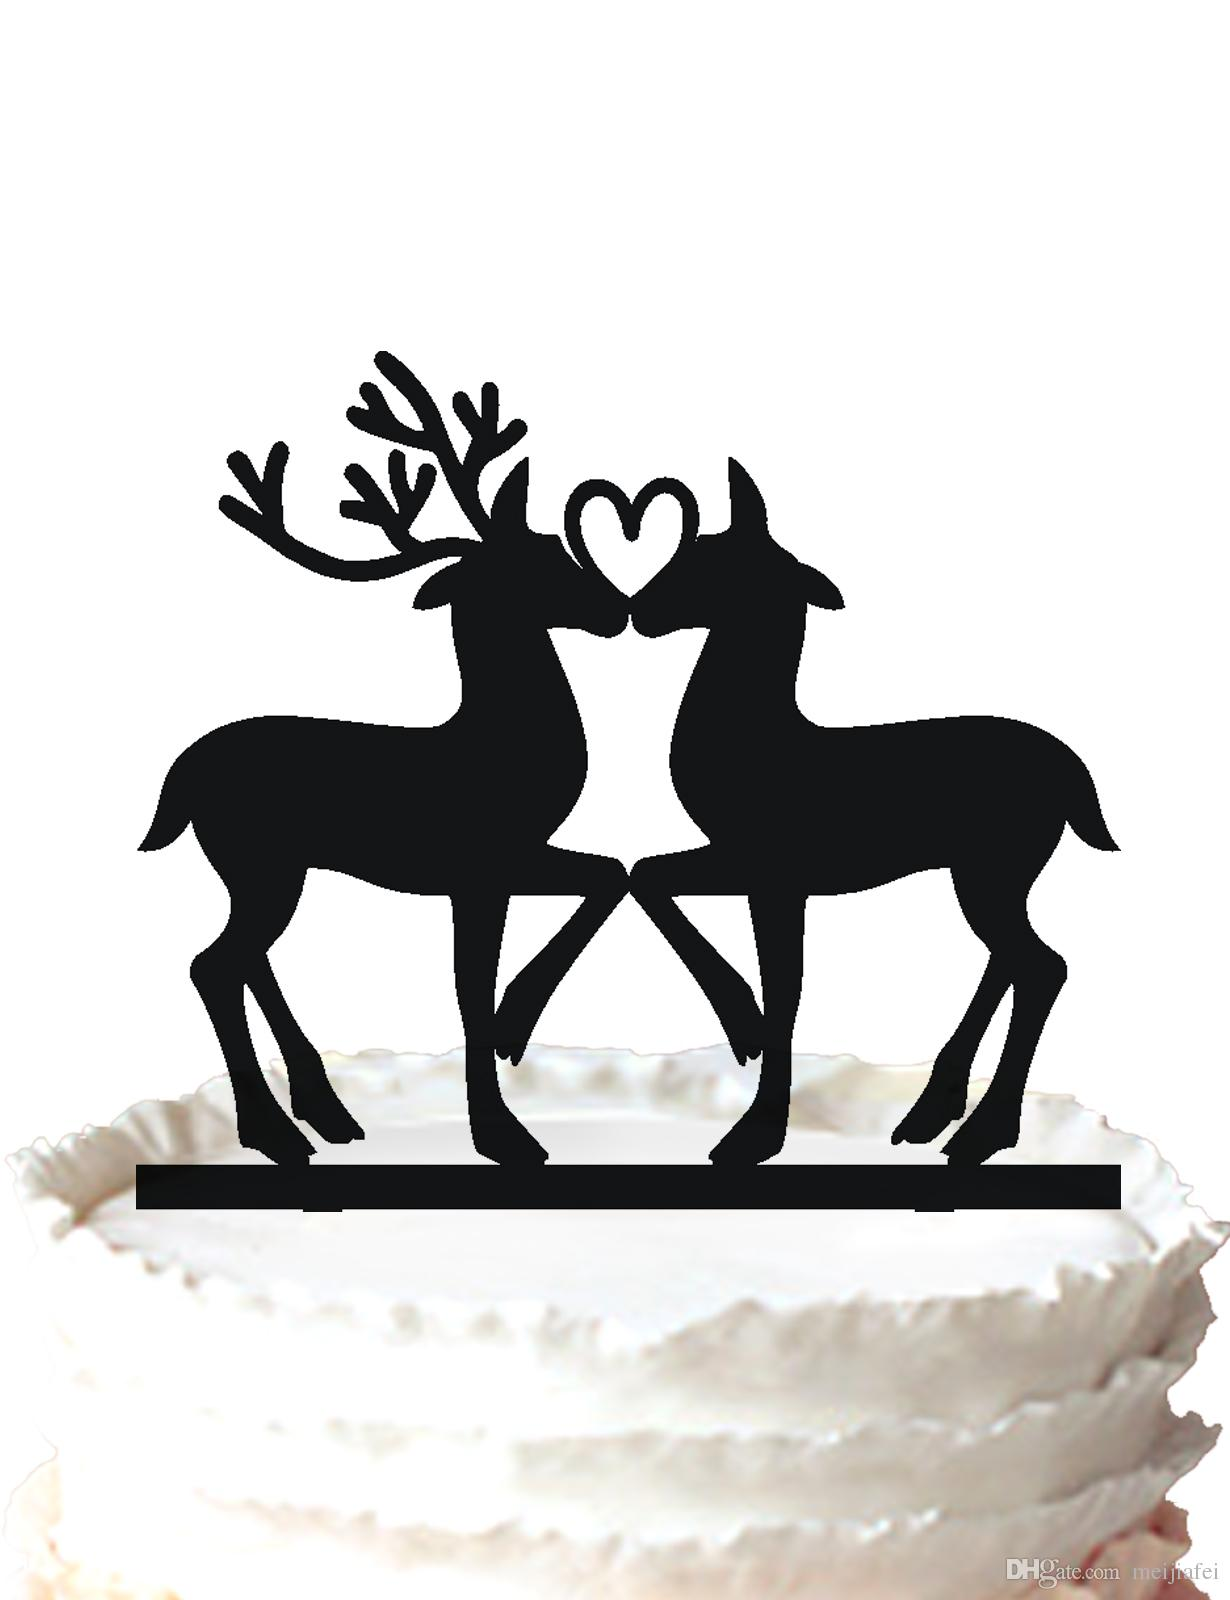 2018 Two Deer Silhouette Wedding Cake Topper And A Heart On Its In Love DecorFor Option From Meijiafei 183